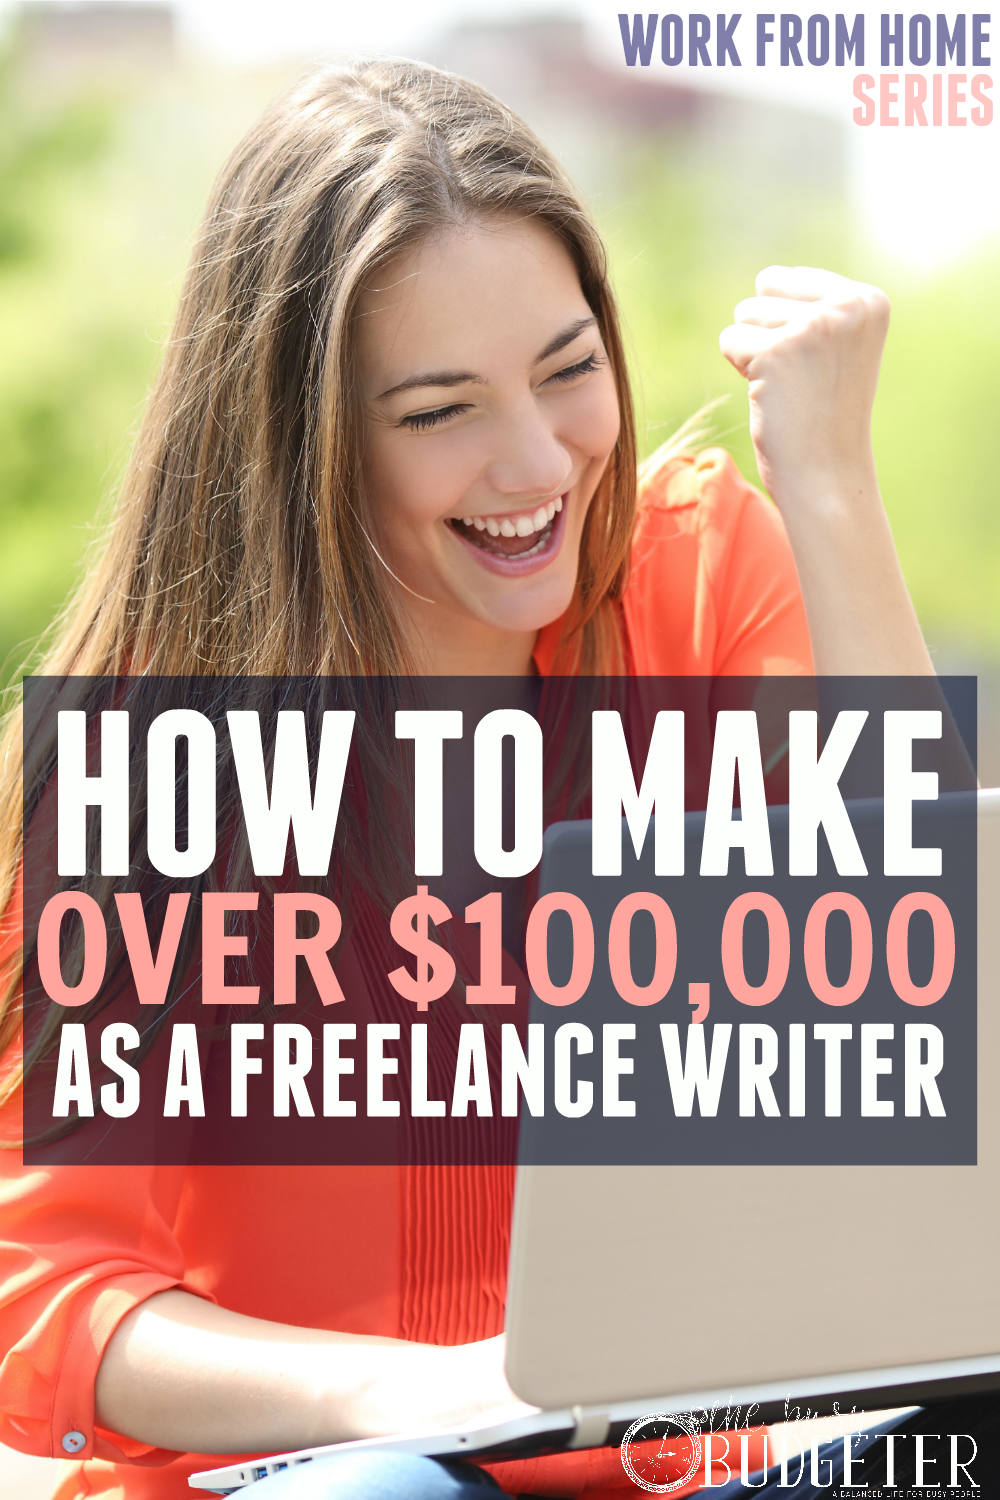 How to make six figures as a freelance writer. DUDE! I make about $200 per article right now as a freelance writer but HAD NO IDEA that people made this much from freelance writing! Super good article. Save for later. Love the way she clearly laid out the steps she took to go from beginner writer to expanding business to such a high income without working more hours. LOVE! Great tips!